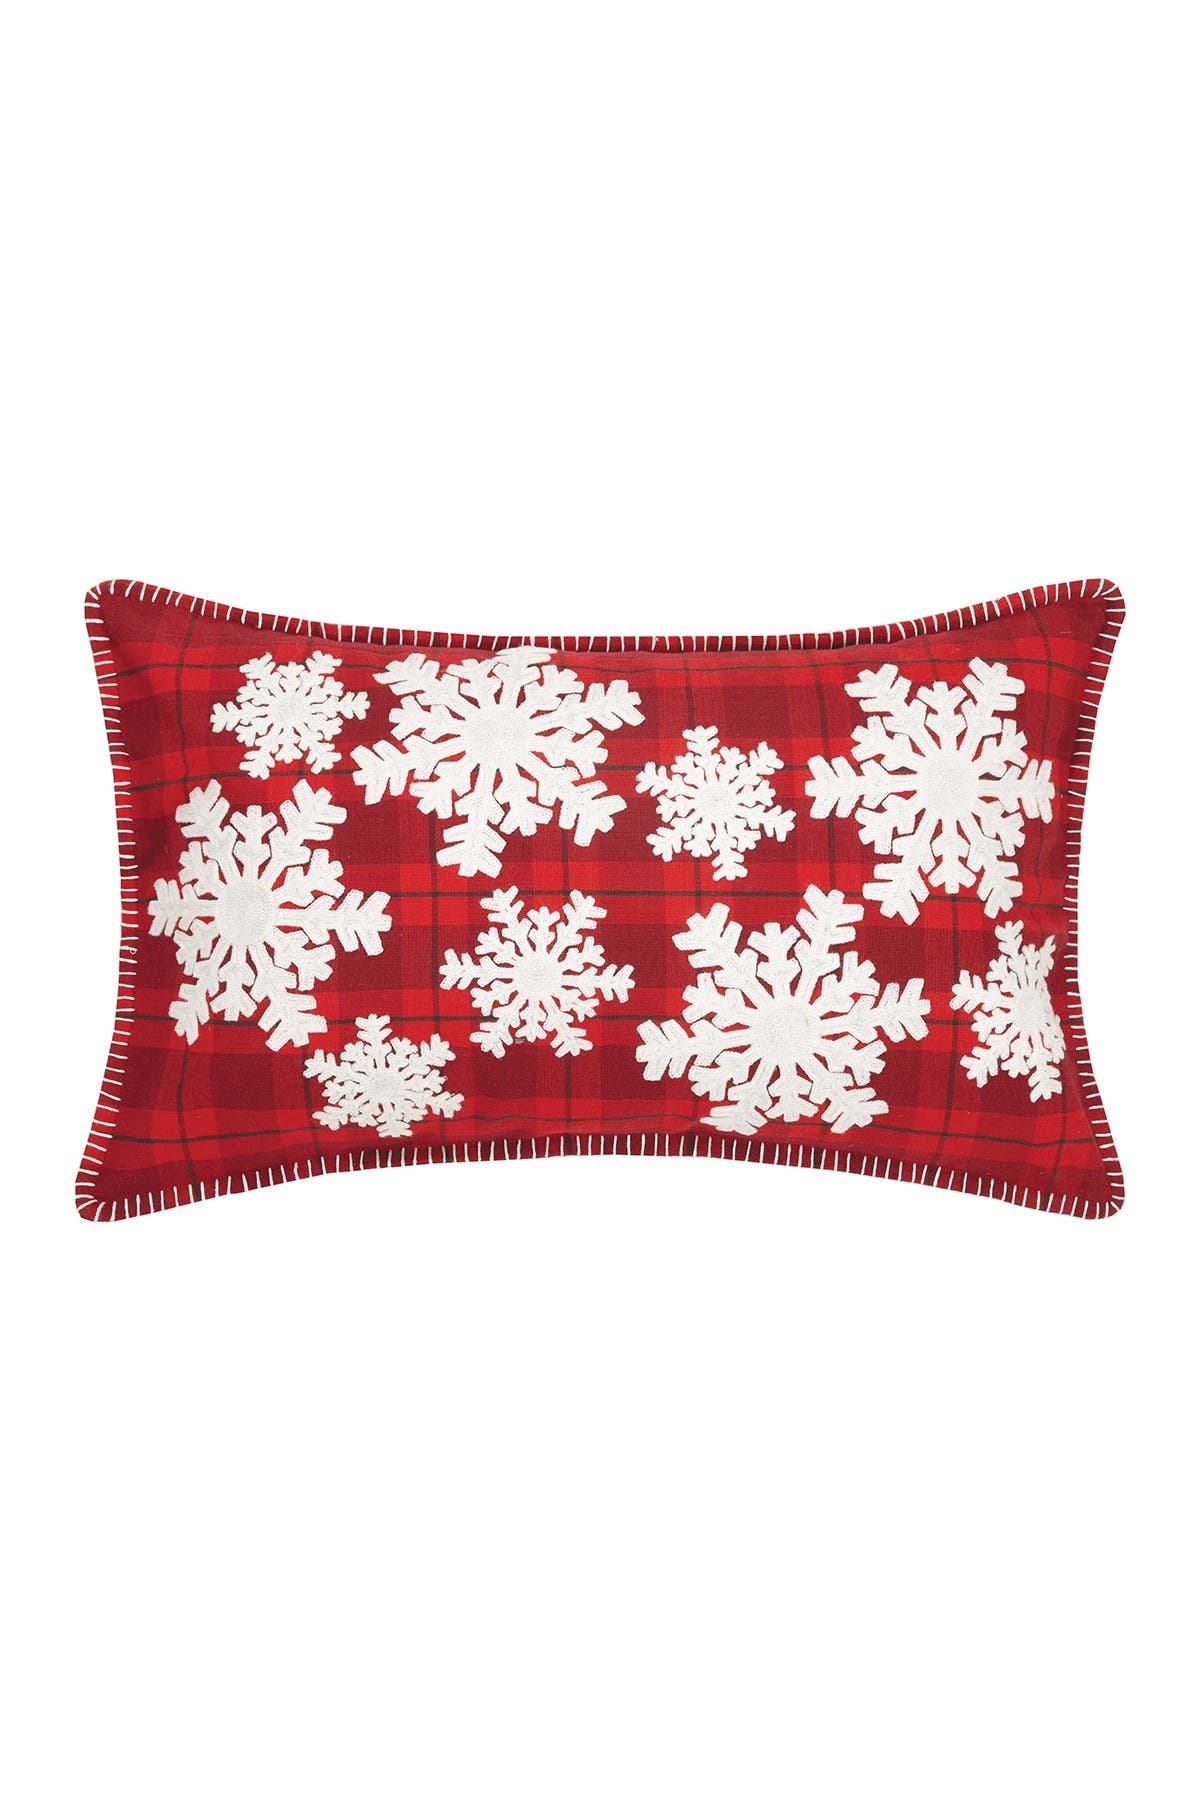 Image of Peking Handicraft Red/White Snowflake Plaid Applique Embroidered Pillow